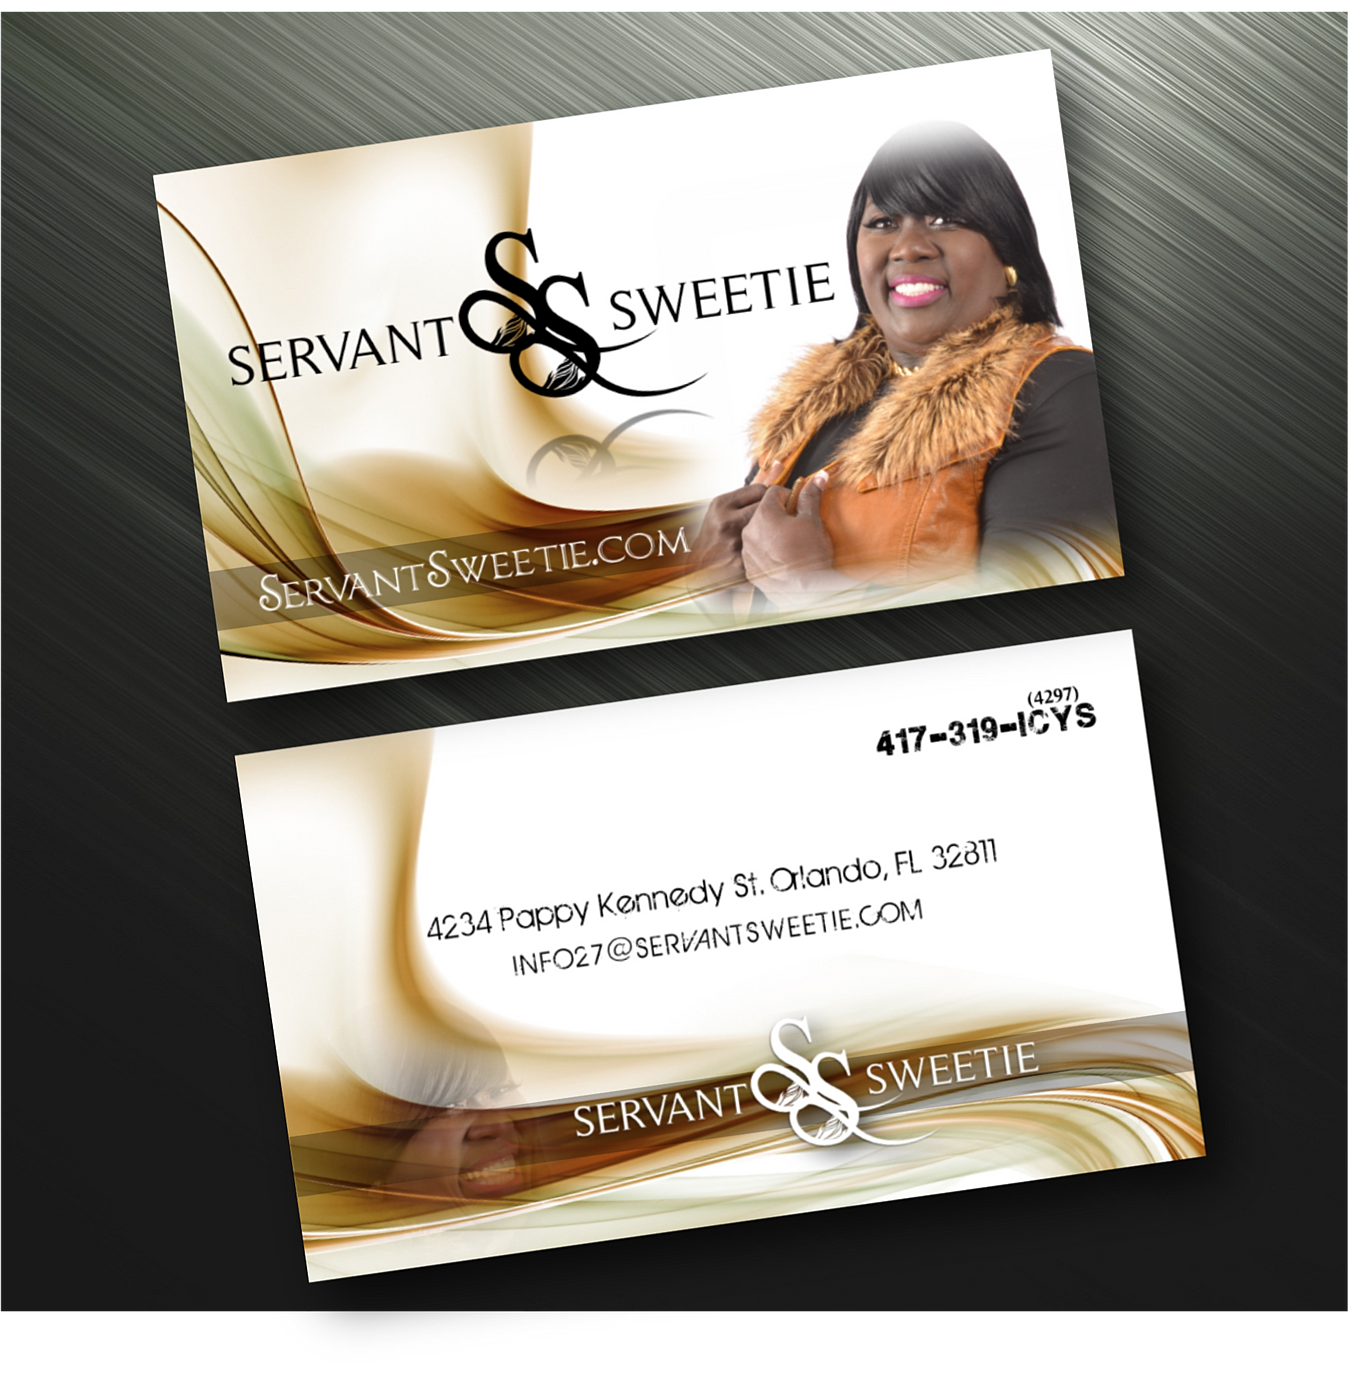 Brandon graphic designs business cards singer servant sweetie magicingreecefo Images